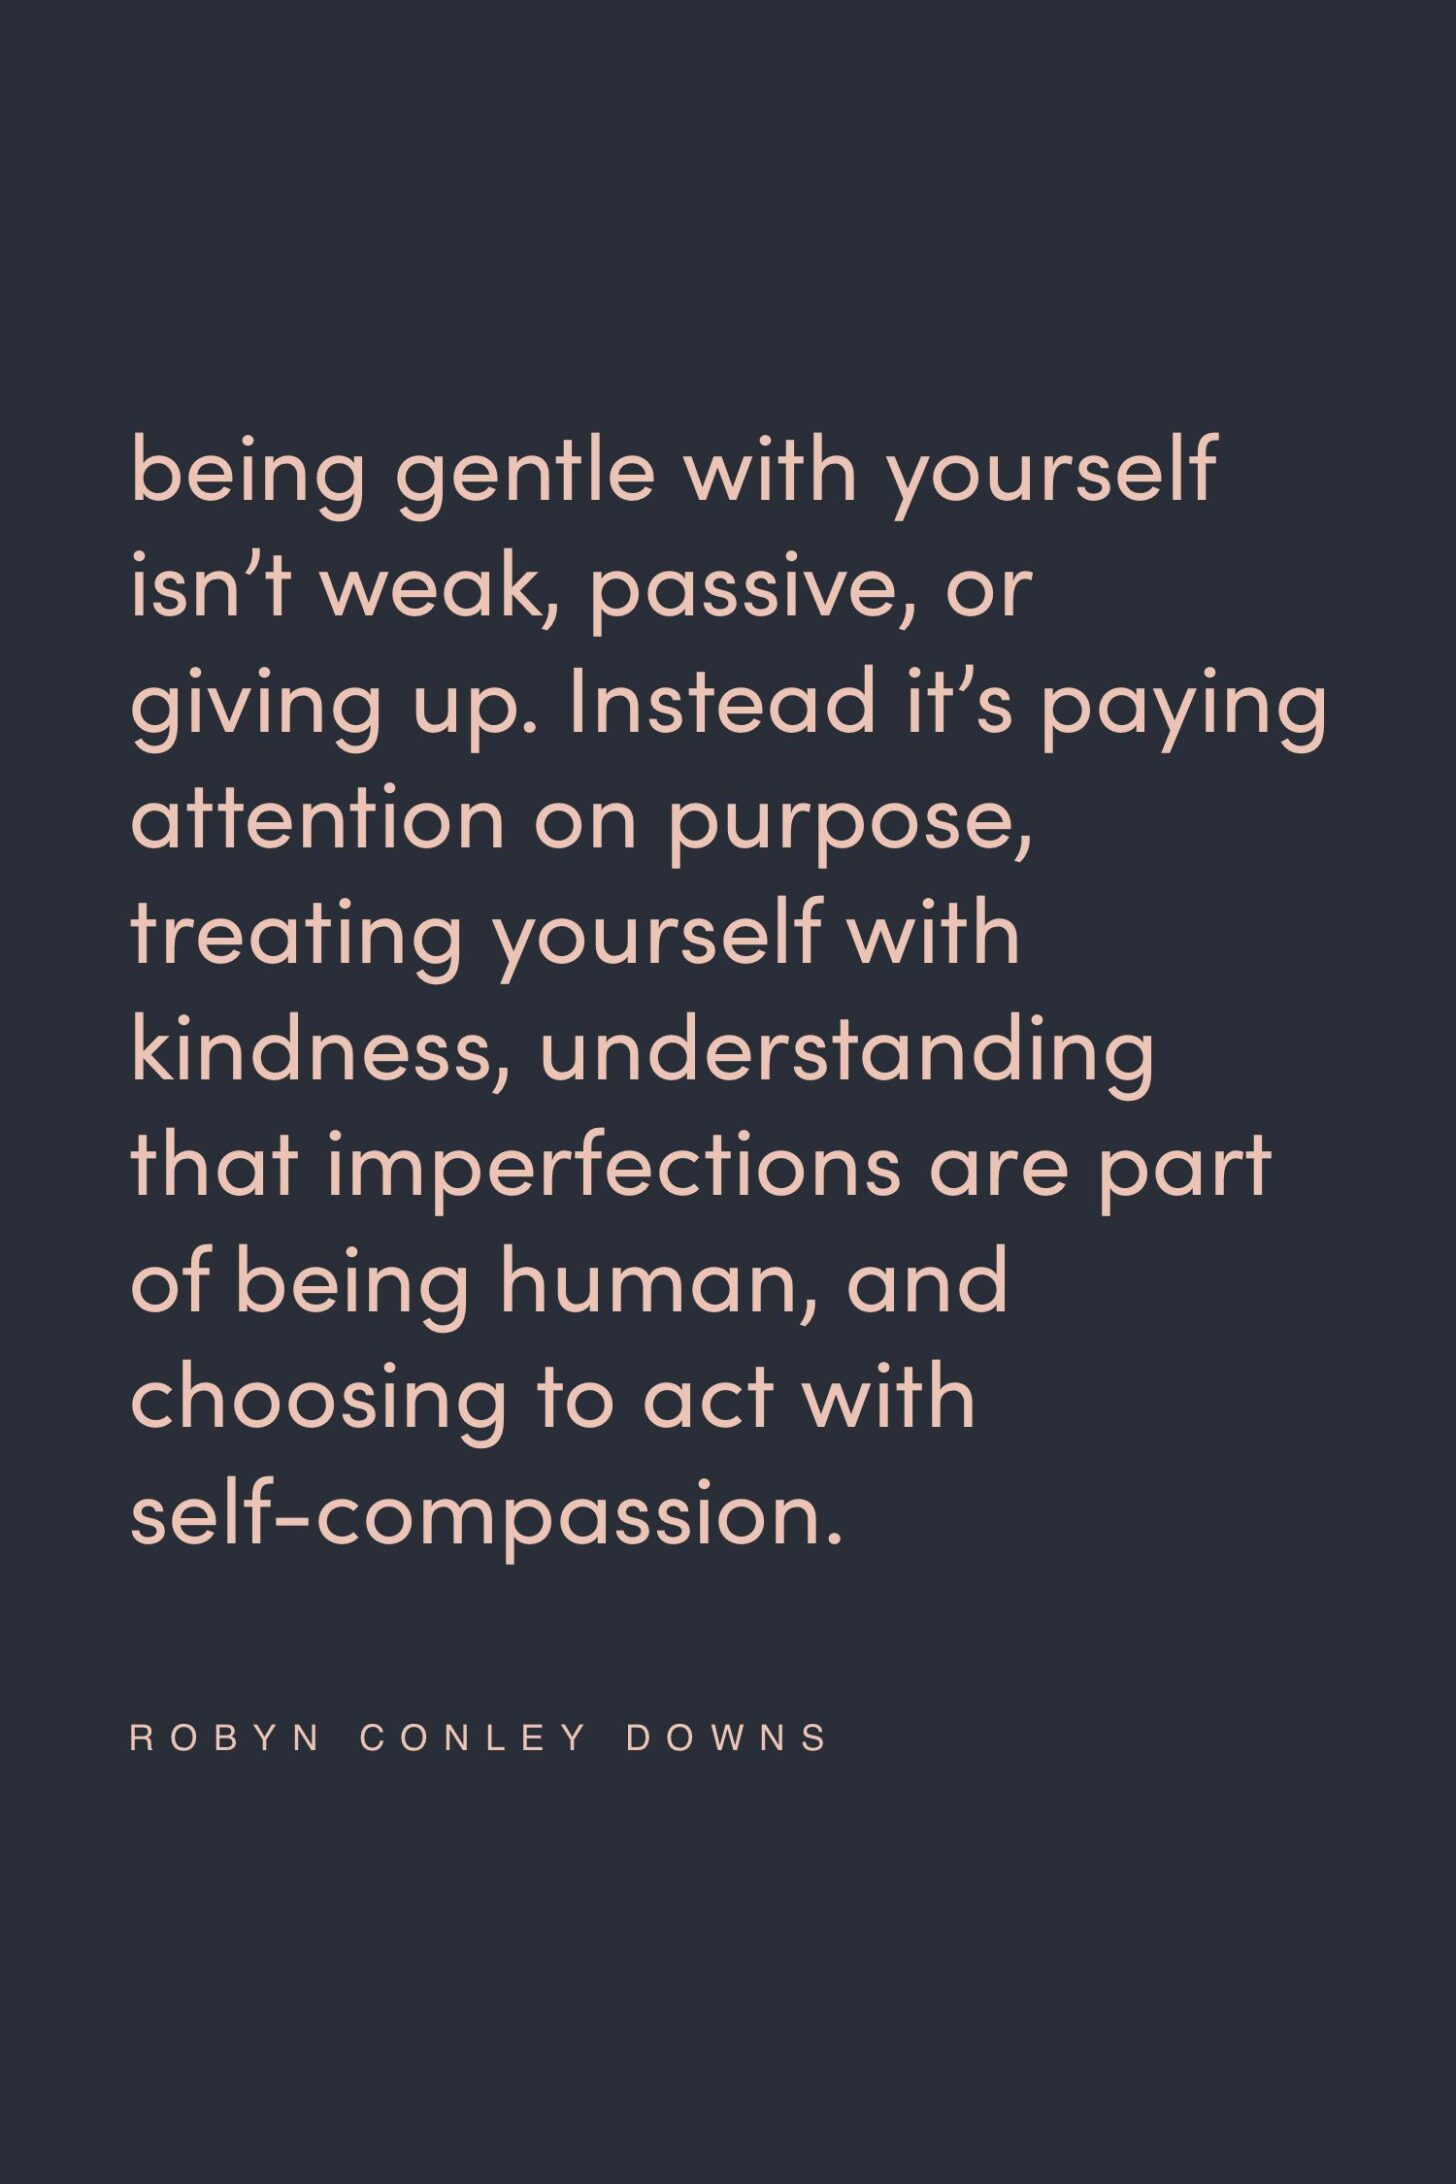 Quote on being gentle by Robyn Conley Downs on the Feel Good Effect Podcast #realfoodwholelife #feelgoodeffectpodcast #gentlemindset #healthandwellnesspodcast #selfcarequote #productivityquote #growthquote #positivityquote #selfcompassionquote #motivationalquote